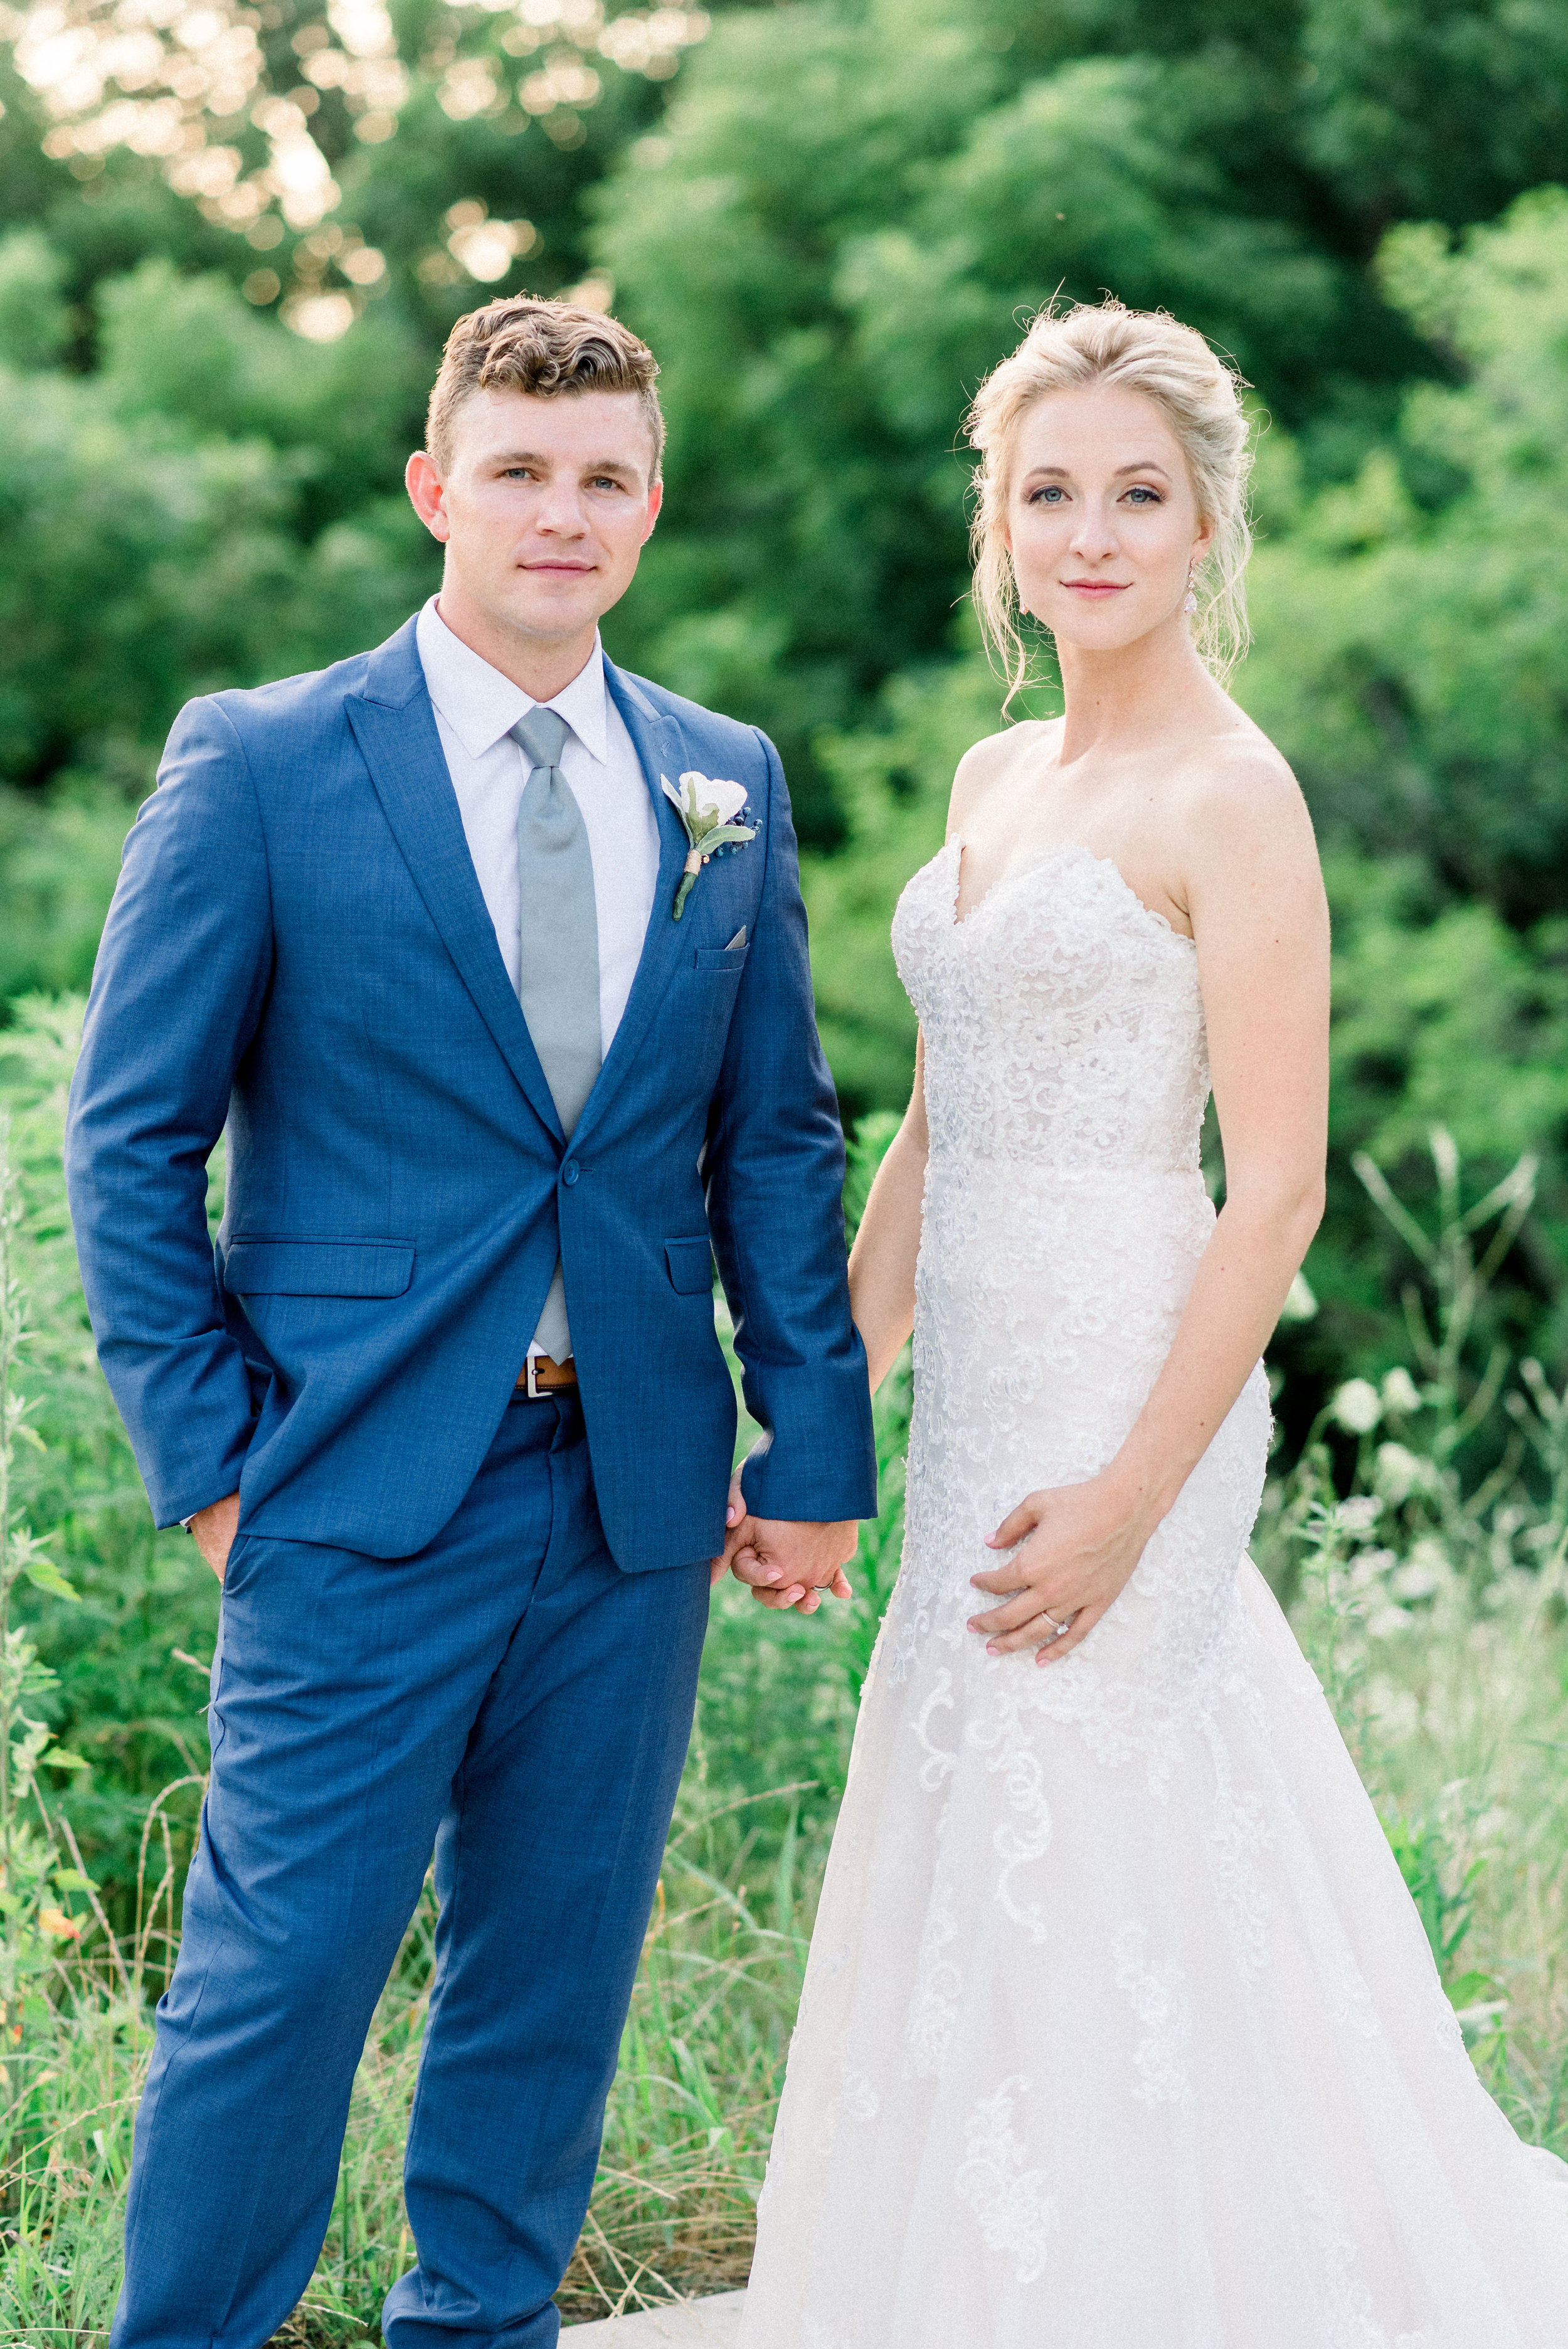 The-Fields-Reserve-Stoughton-WI-Bride-and-Groom-Wedding-Photos-402.jpg